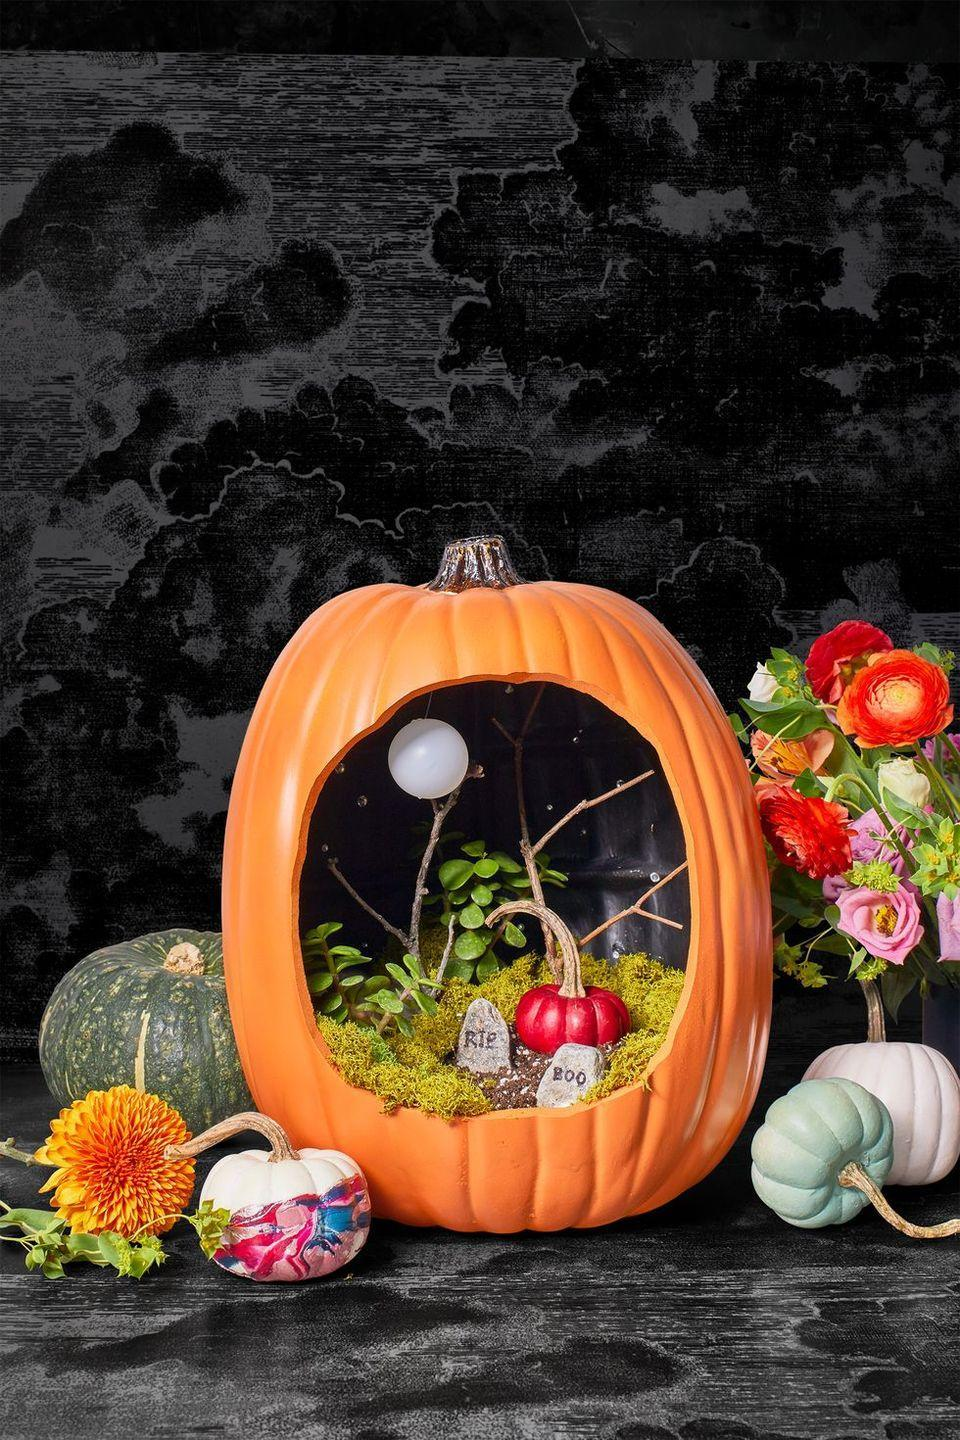 """<p>If you love nothing more than an over-the-top look, fill a carved pumpkin with everything from reindeer moss and twigs to mini headstones. Don't forget the full moon (a Ping-Pong ball that you can easily hang from a thin string).</p><p><a class=""""link rapid-noclick-resp"""" href=""""https://www.amazon.com/SuperMoss-23080-Reindeer-Moss-Preserved/dp/B01C5RTP7Y/ref=sr_1_4?tag=syn-yahoo-20&ascsubtag=%5Bartid%7C10055.g.421%5Bsrc%7Cyahoo-us"""" rel=""""nofollow noopener"""" target=""""_blank"""" data-ylk=""""slk:SHOP REINDEER MOSS"""">SHOP REINDEER MOSS</a></p>"""